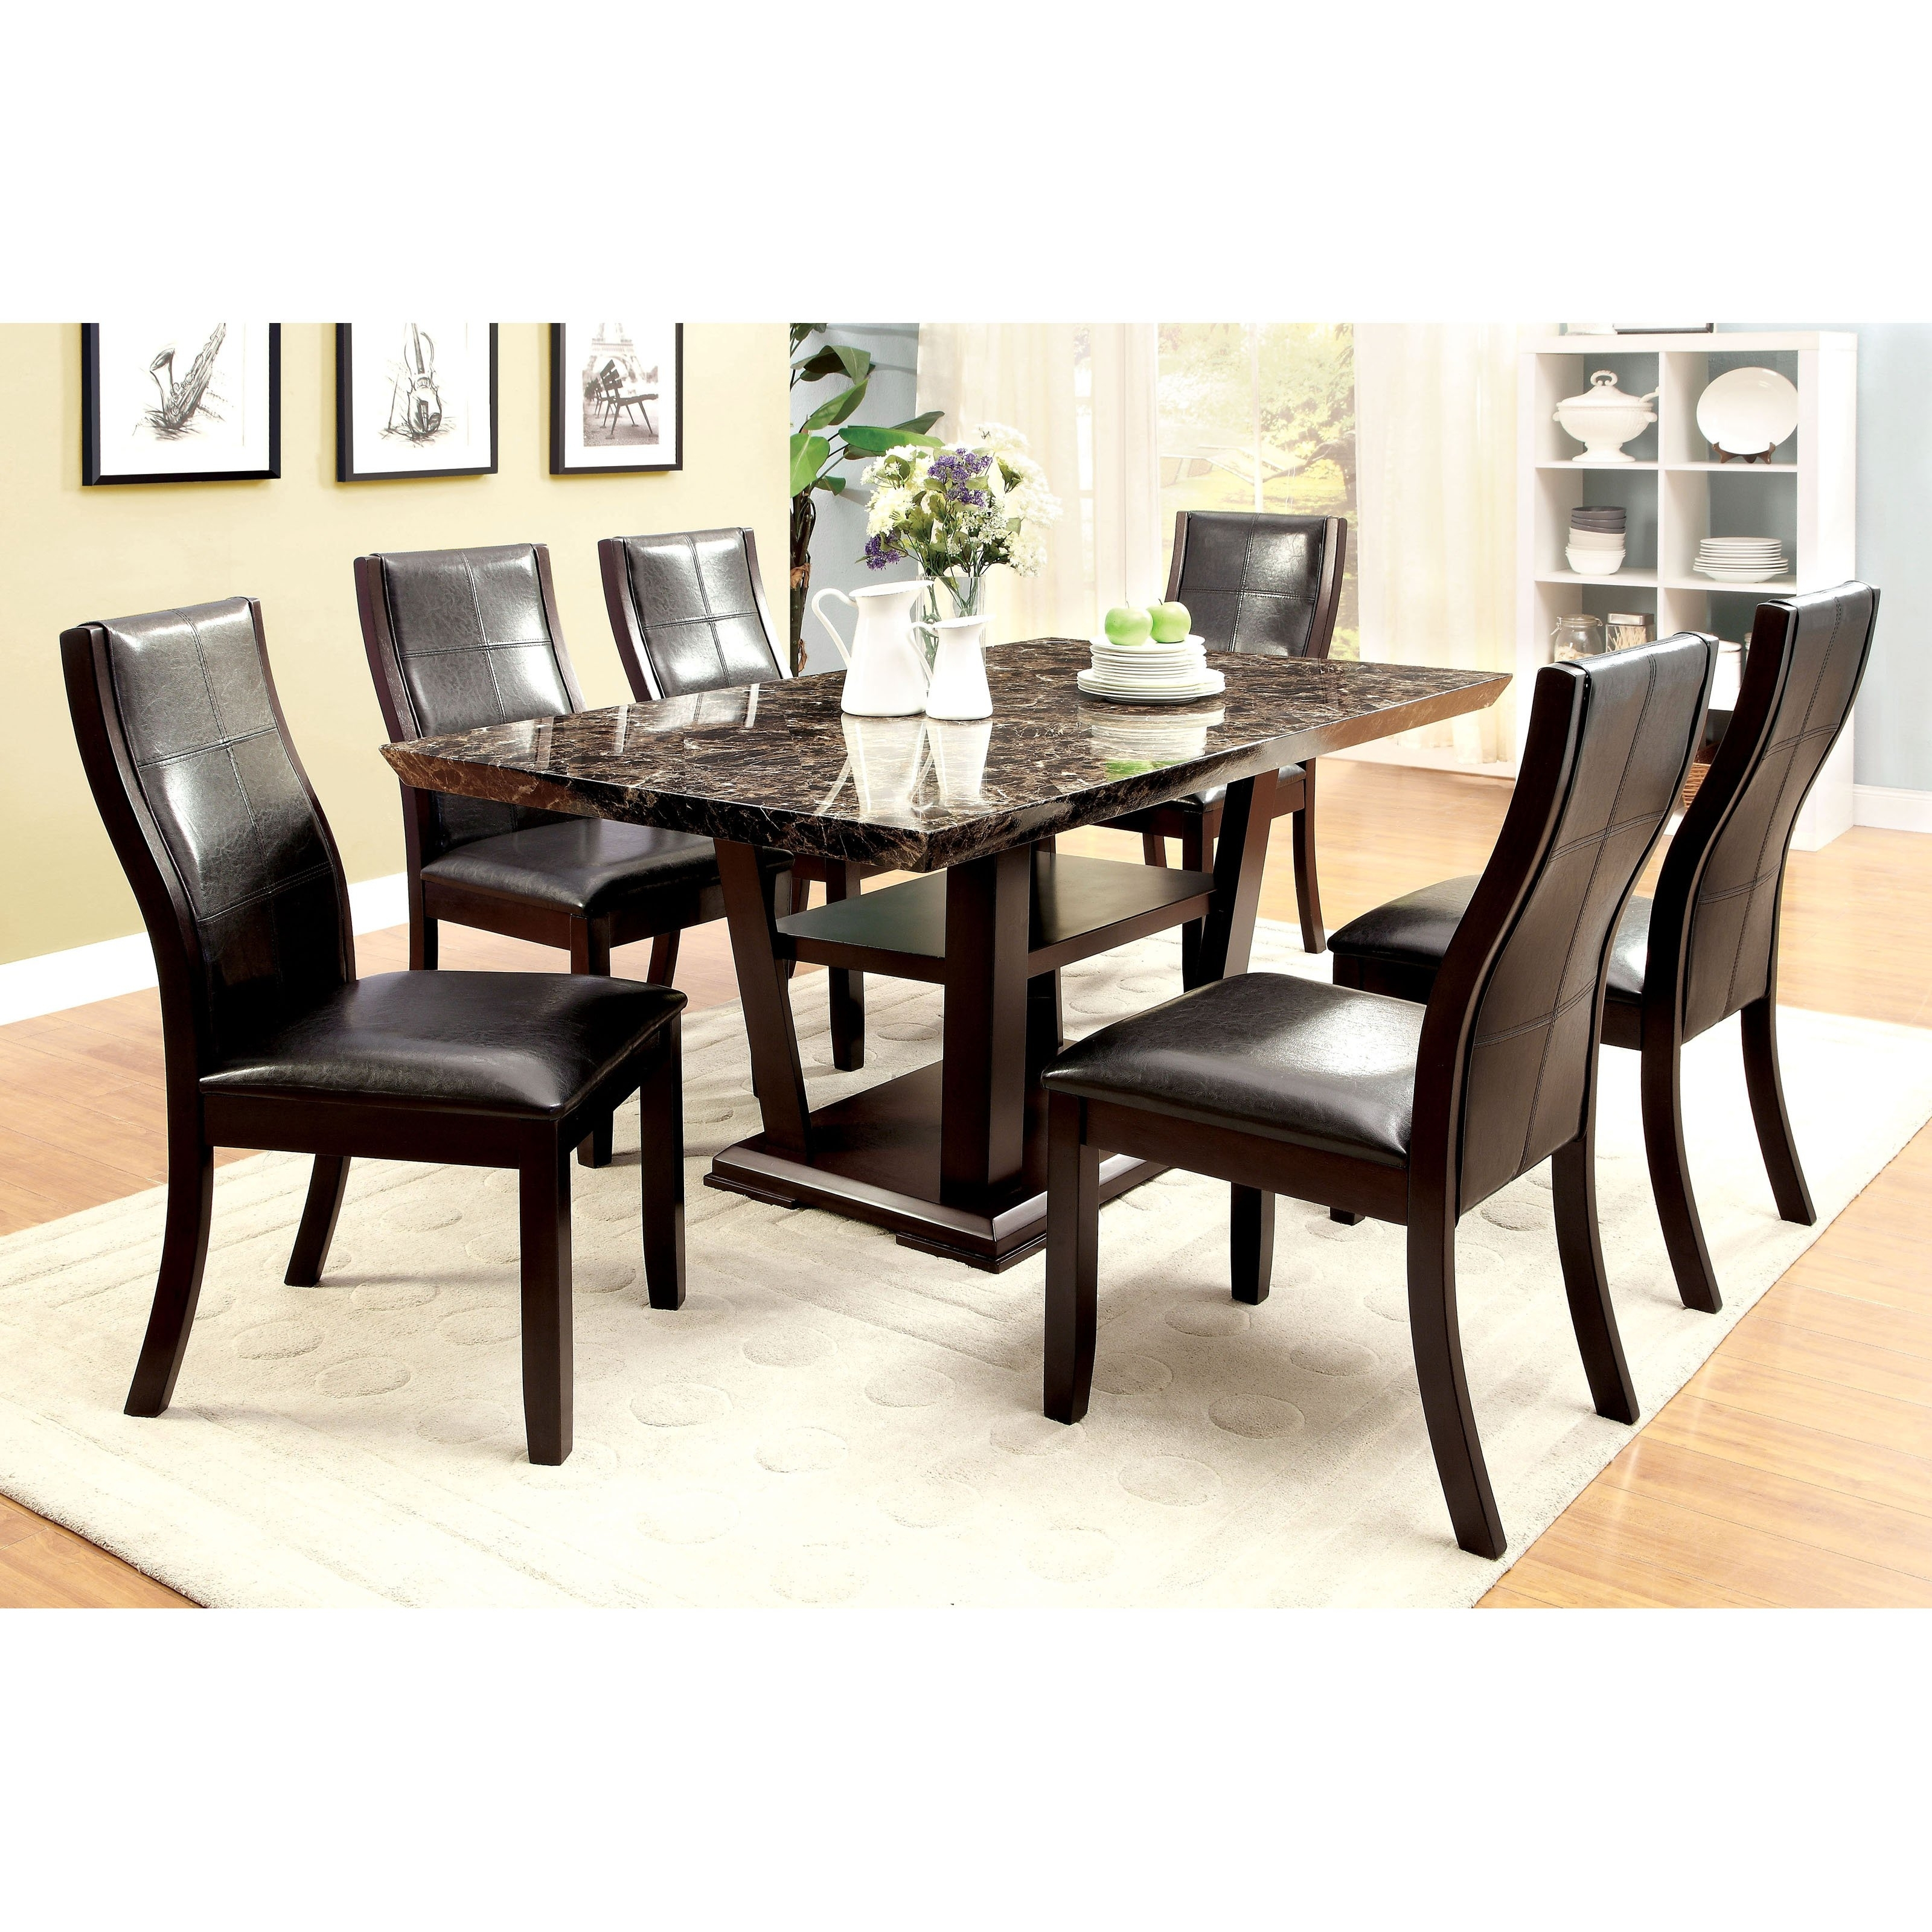 25 Inspirations Of Marble Dining Tables Sets Inside Most Current Pratiksha Sonoma 5 Piece Dining Sets (View 4 of 20)